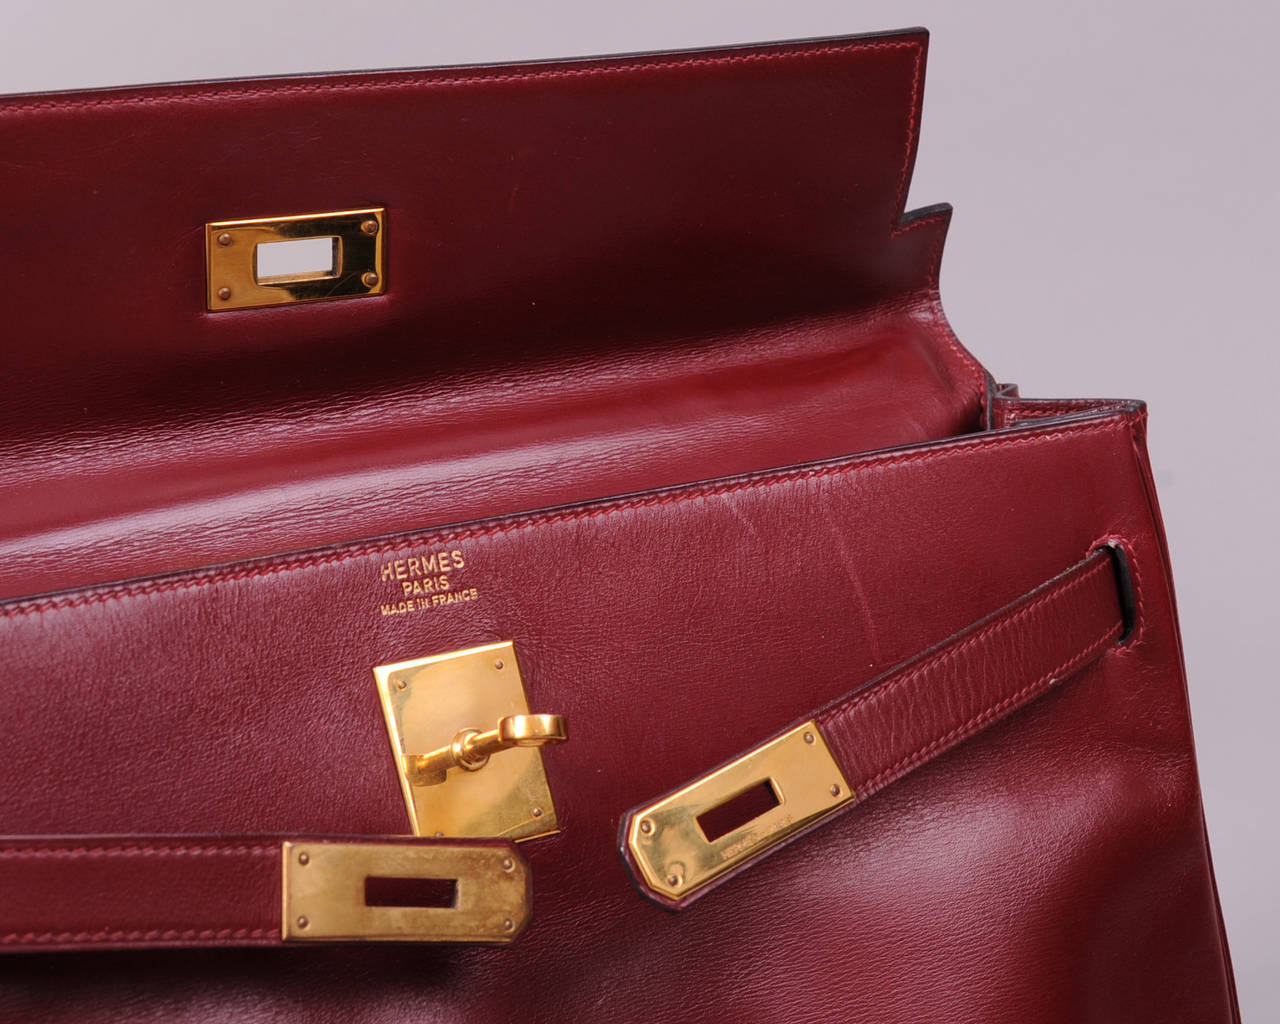 Hermes Vintage Burgundy Kelly Bag, 35cm For Sale at 1stdibs